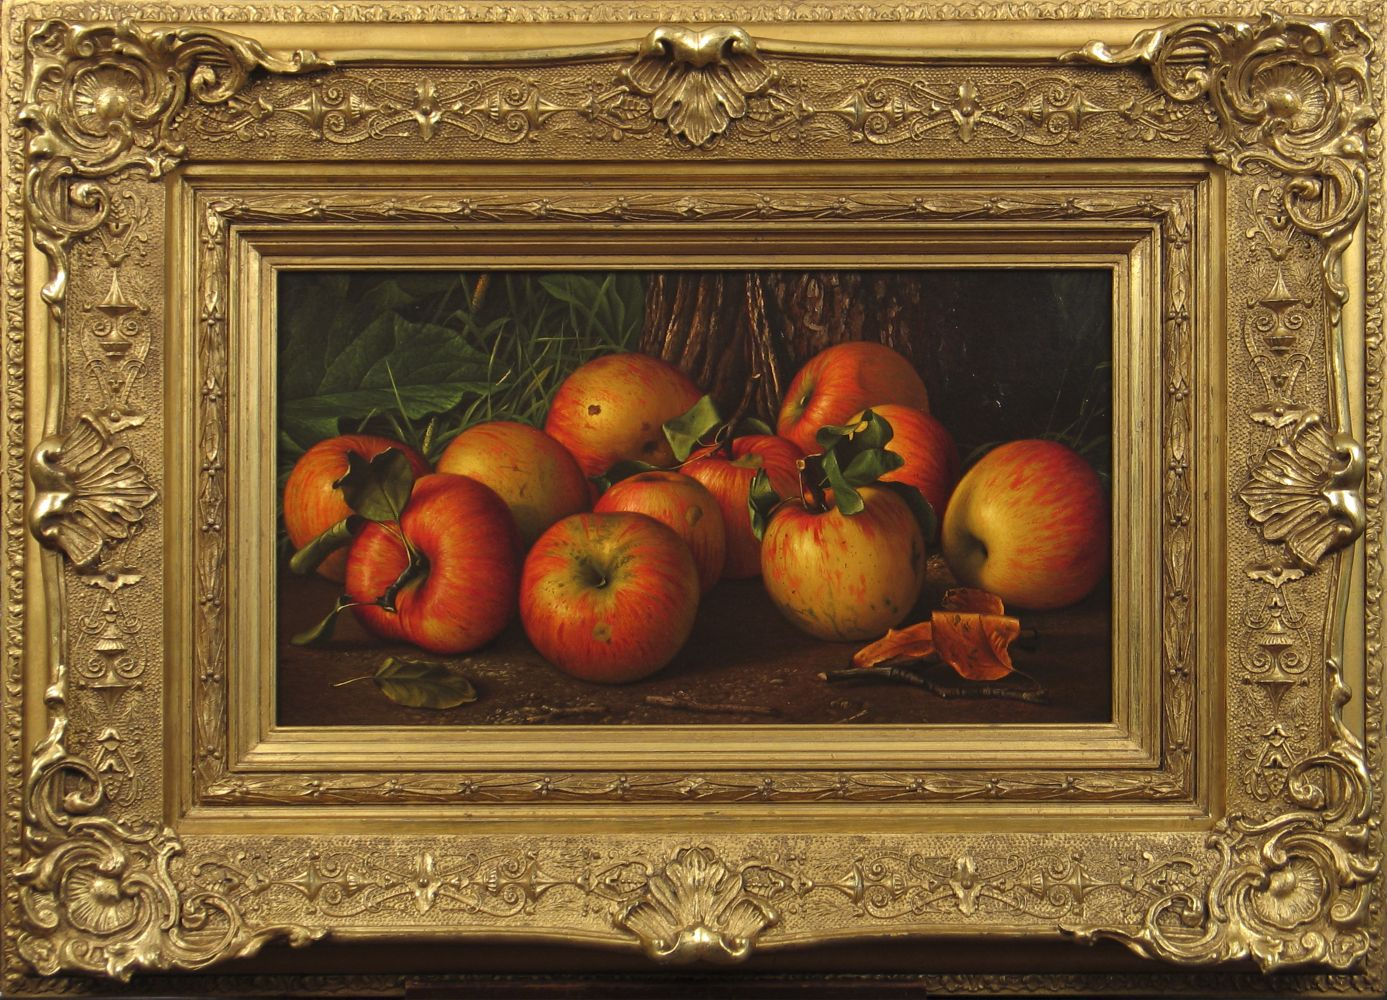 Levi Wells Prentice (1851–1935), Apples by a Tree, c. 1885, oil on canvas, 10 x 18 in. (framed)